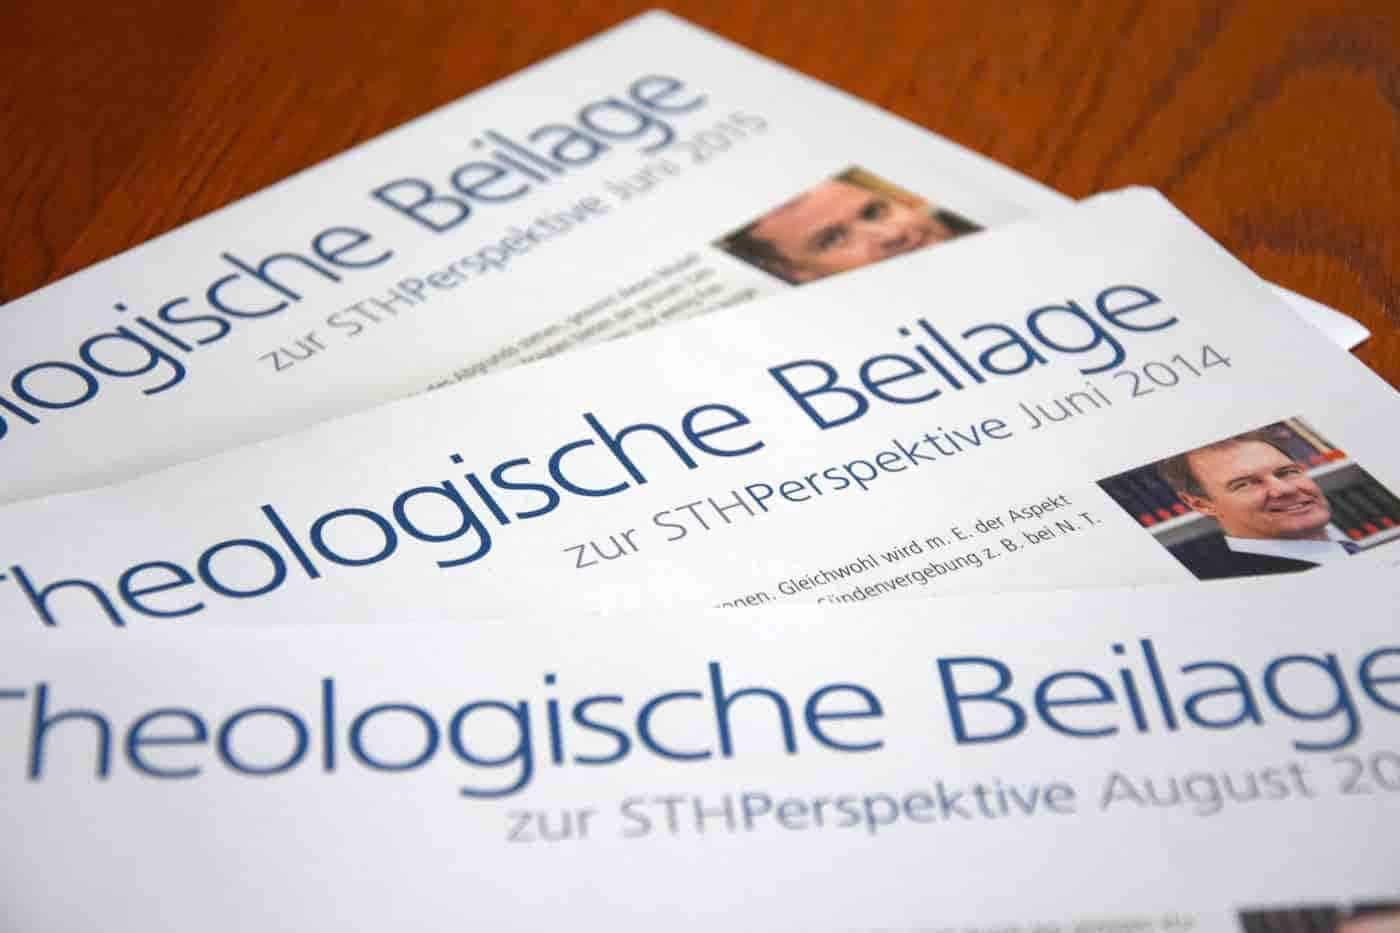 Sth Basel Theologische Beilage